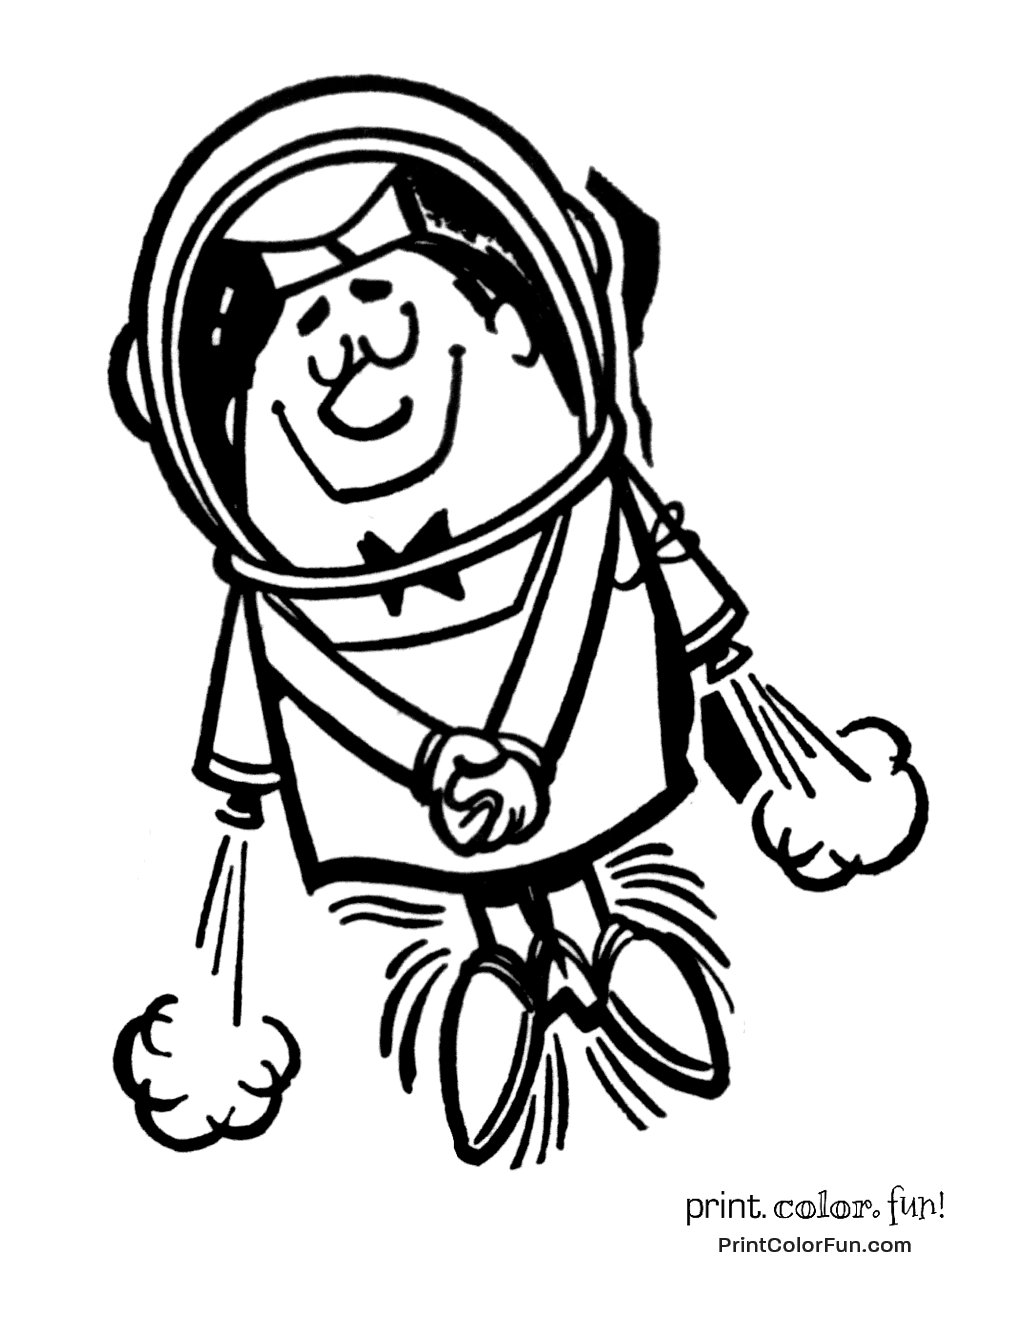 retro rocket man astronaut coloring page print color fun